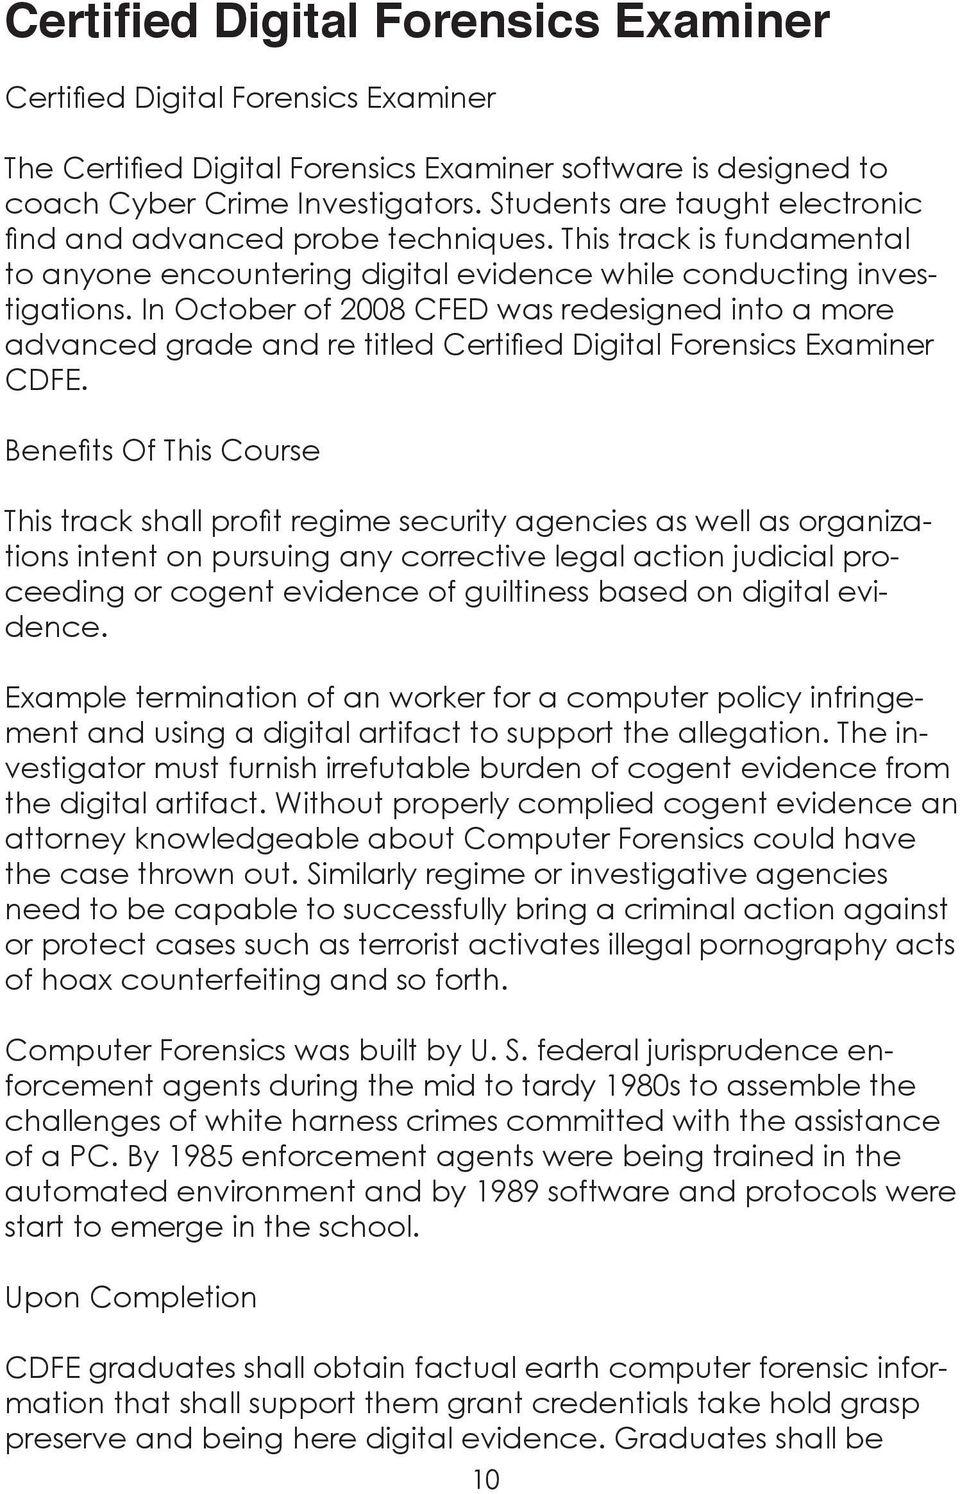 In October of 2008 CFED was redesigned into a more advanced grade and re titled Certified Digital Forensics Examiner CDFE.